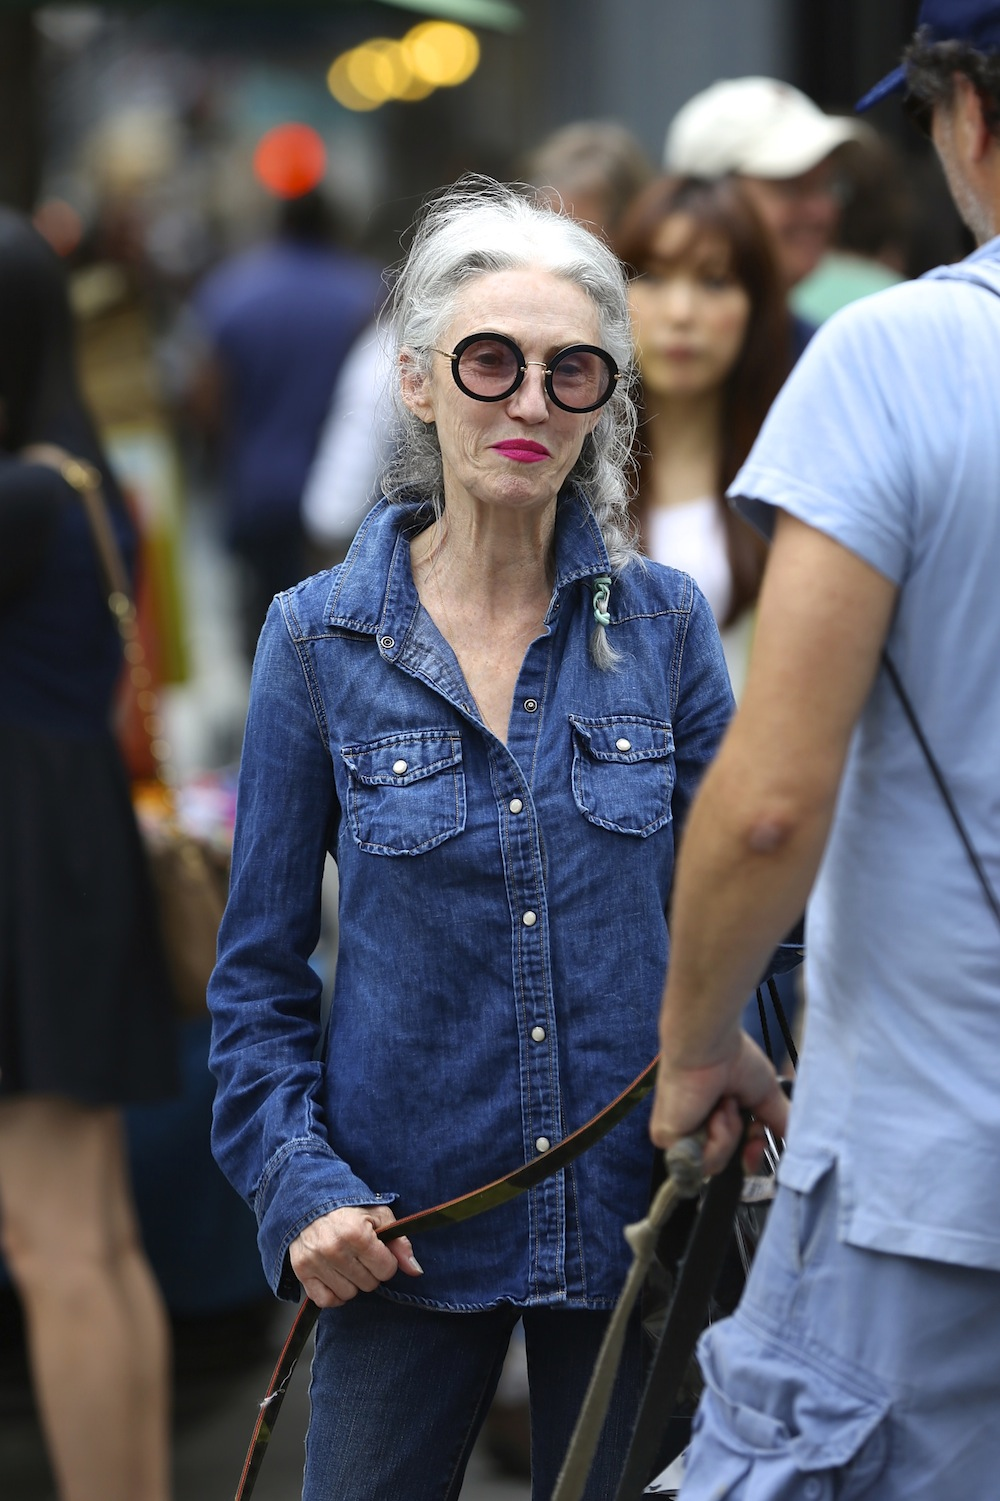 Street Style Fashion: Style is Ageless